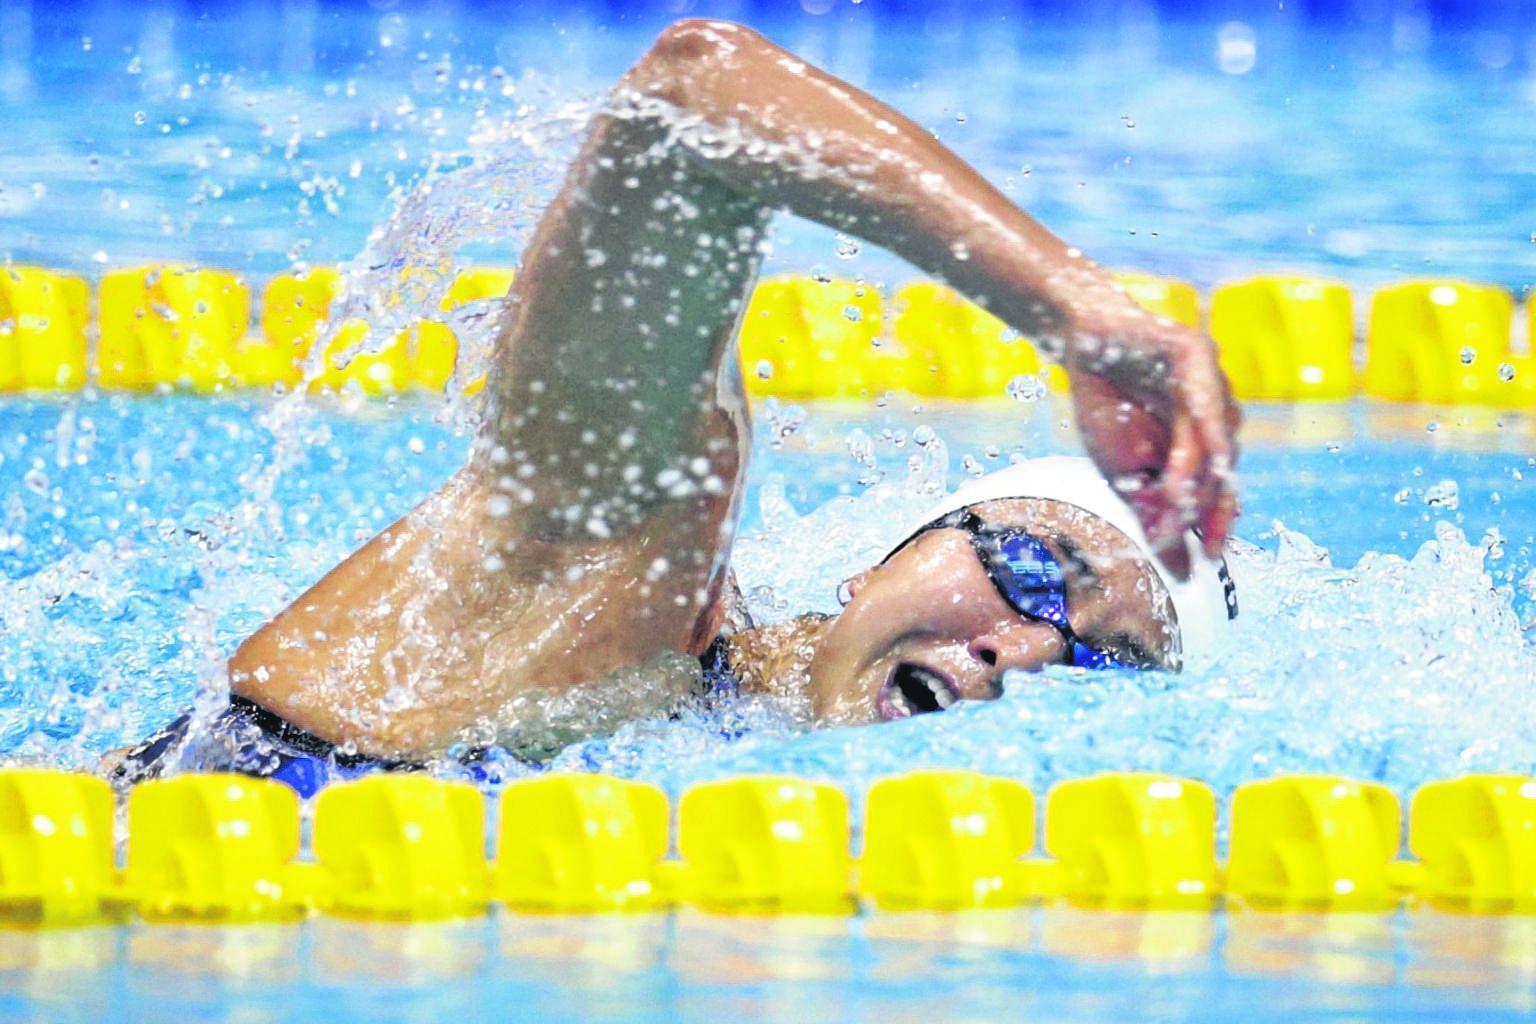 Quah Ting Wen setting a new national record of 55.52sec in the 100m freestyle in March's National Age Group Championships. Training overseas for most of the past eight months has paid off with her gaining an Olympic spot.